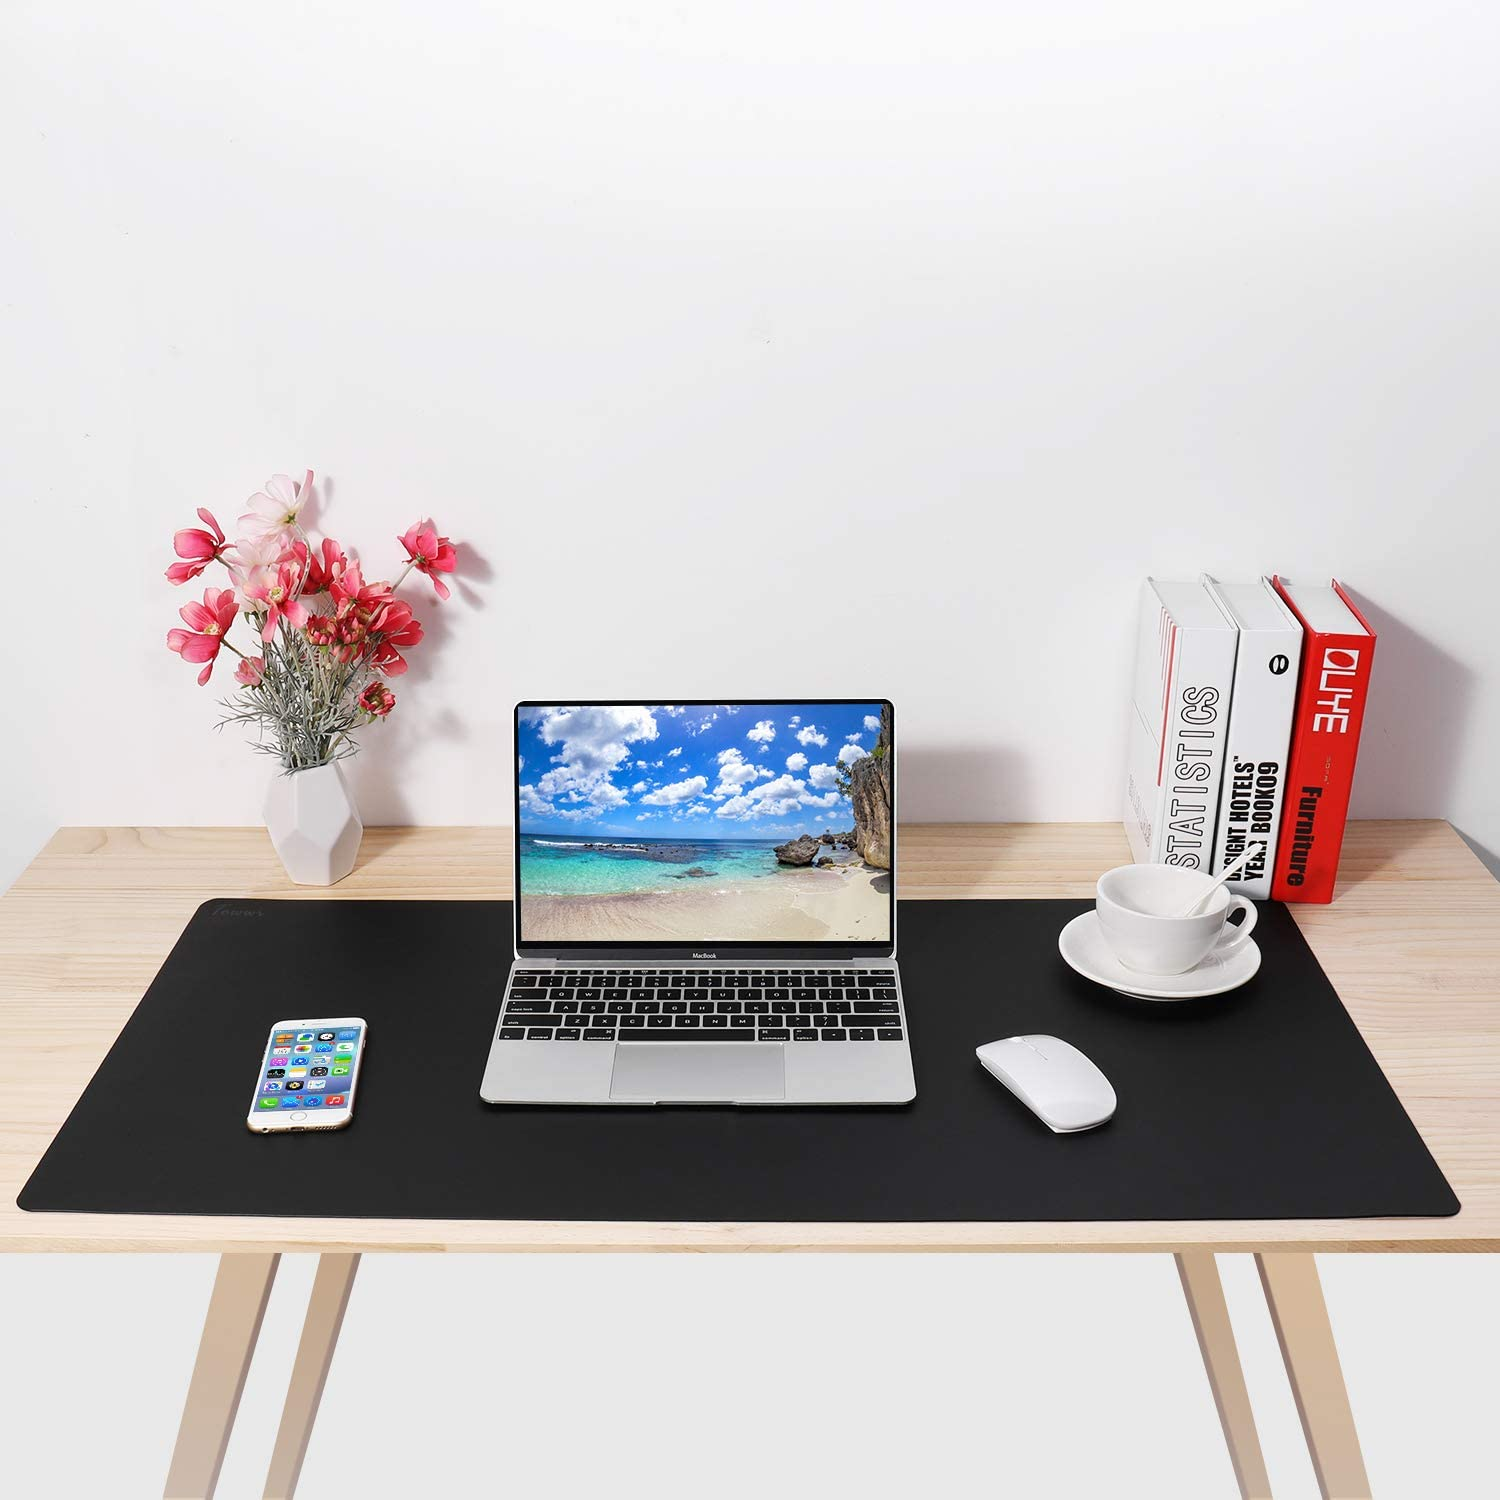 """TOWWI Leather Desk Pad Protector 36""""x17"""" Desk Blotter Pad, Waterproof Writing Desk Accessories : Office Products"""